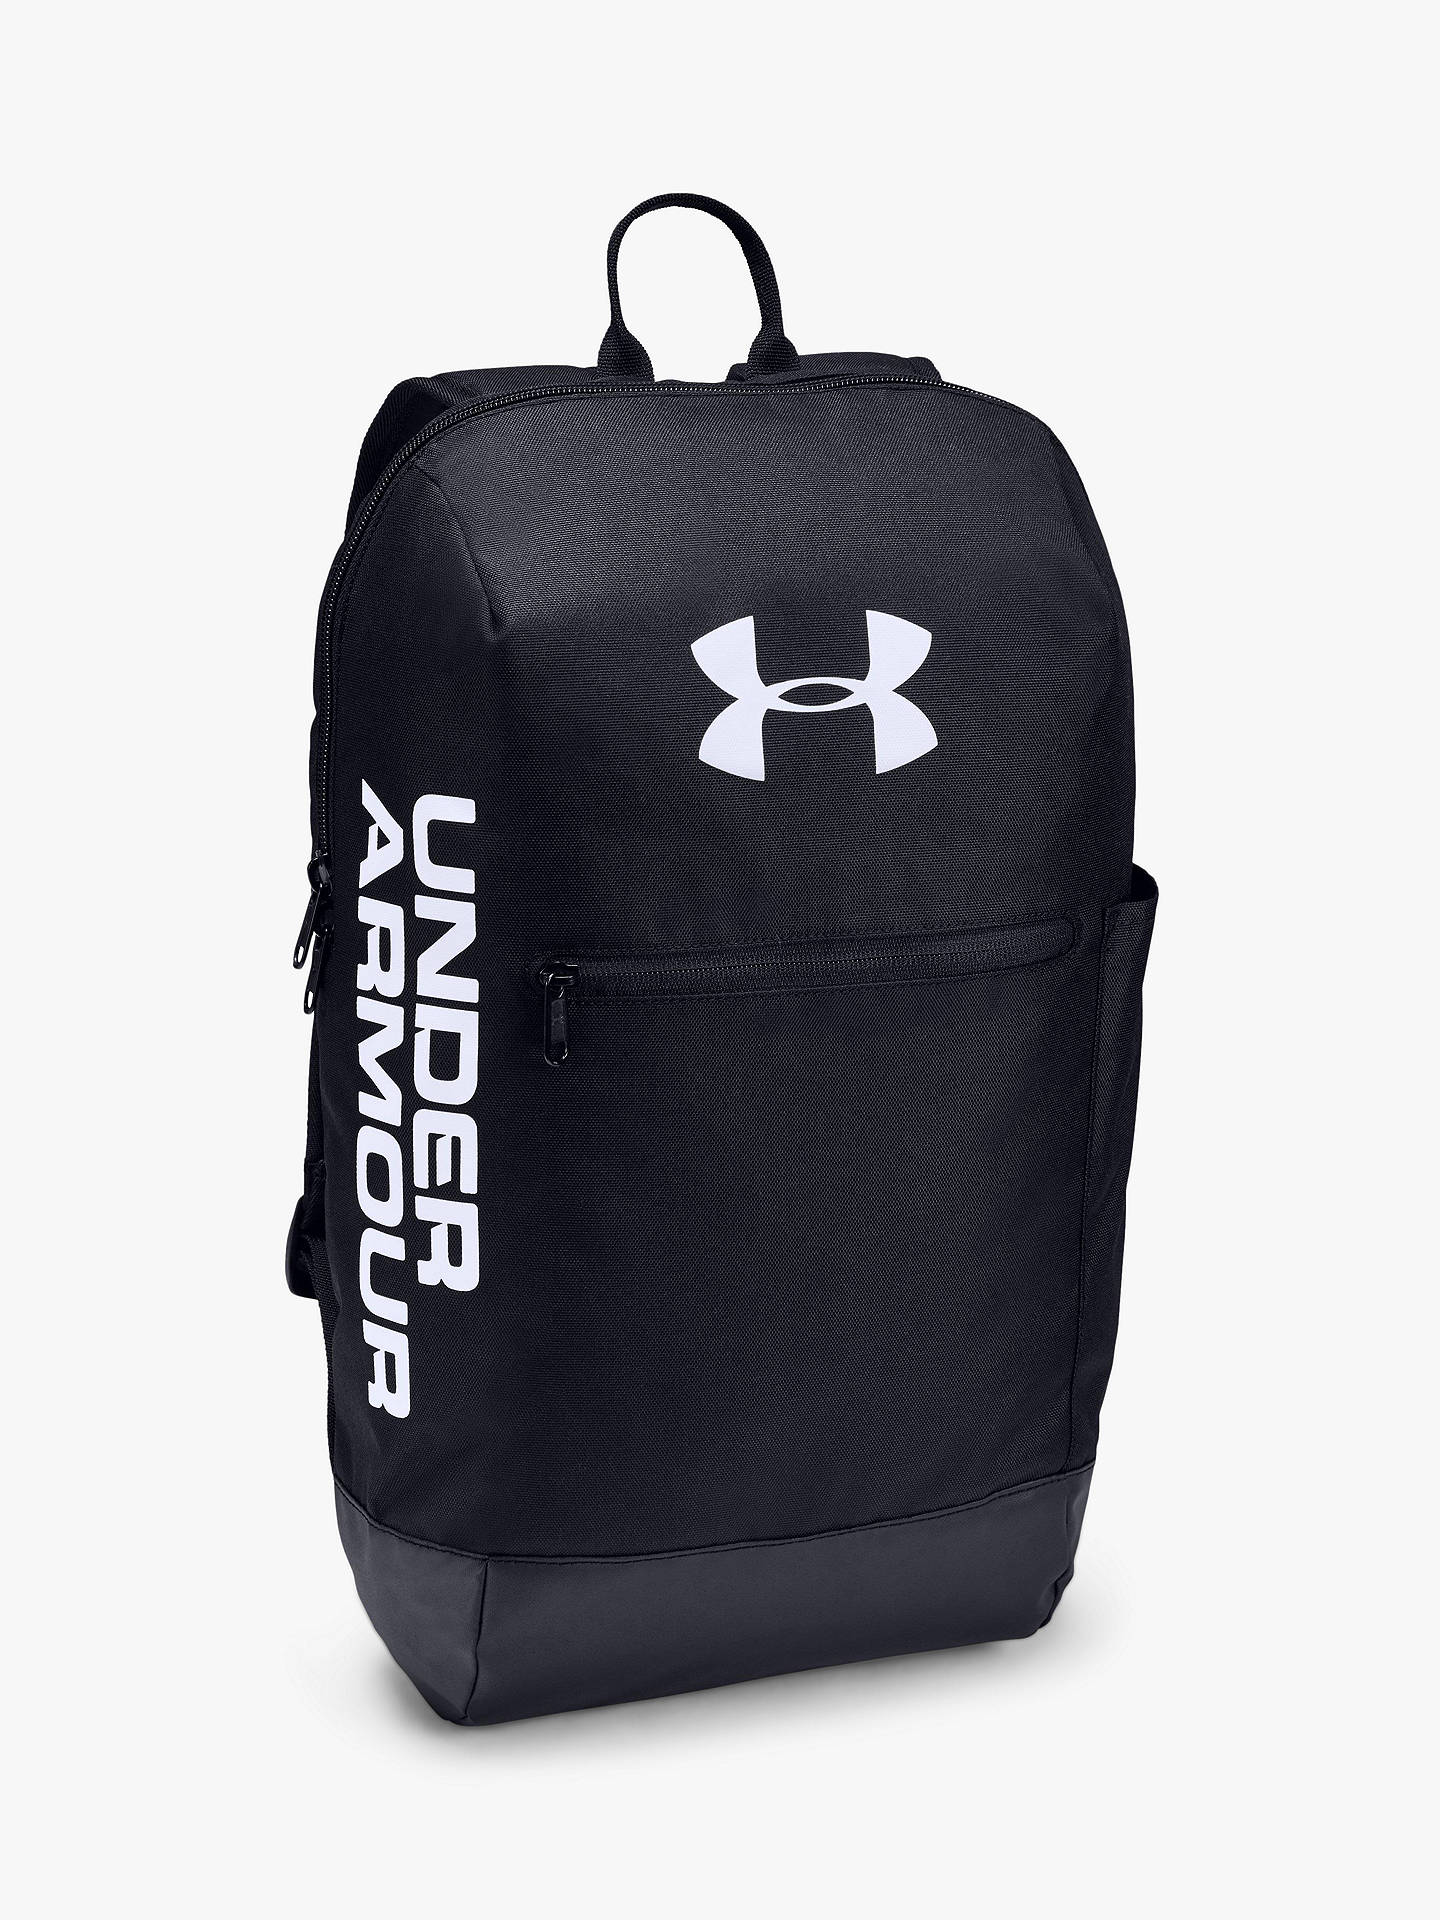 3b73c09159 Under Armour Patterson Backpack, Black/White